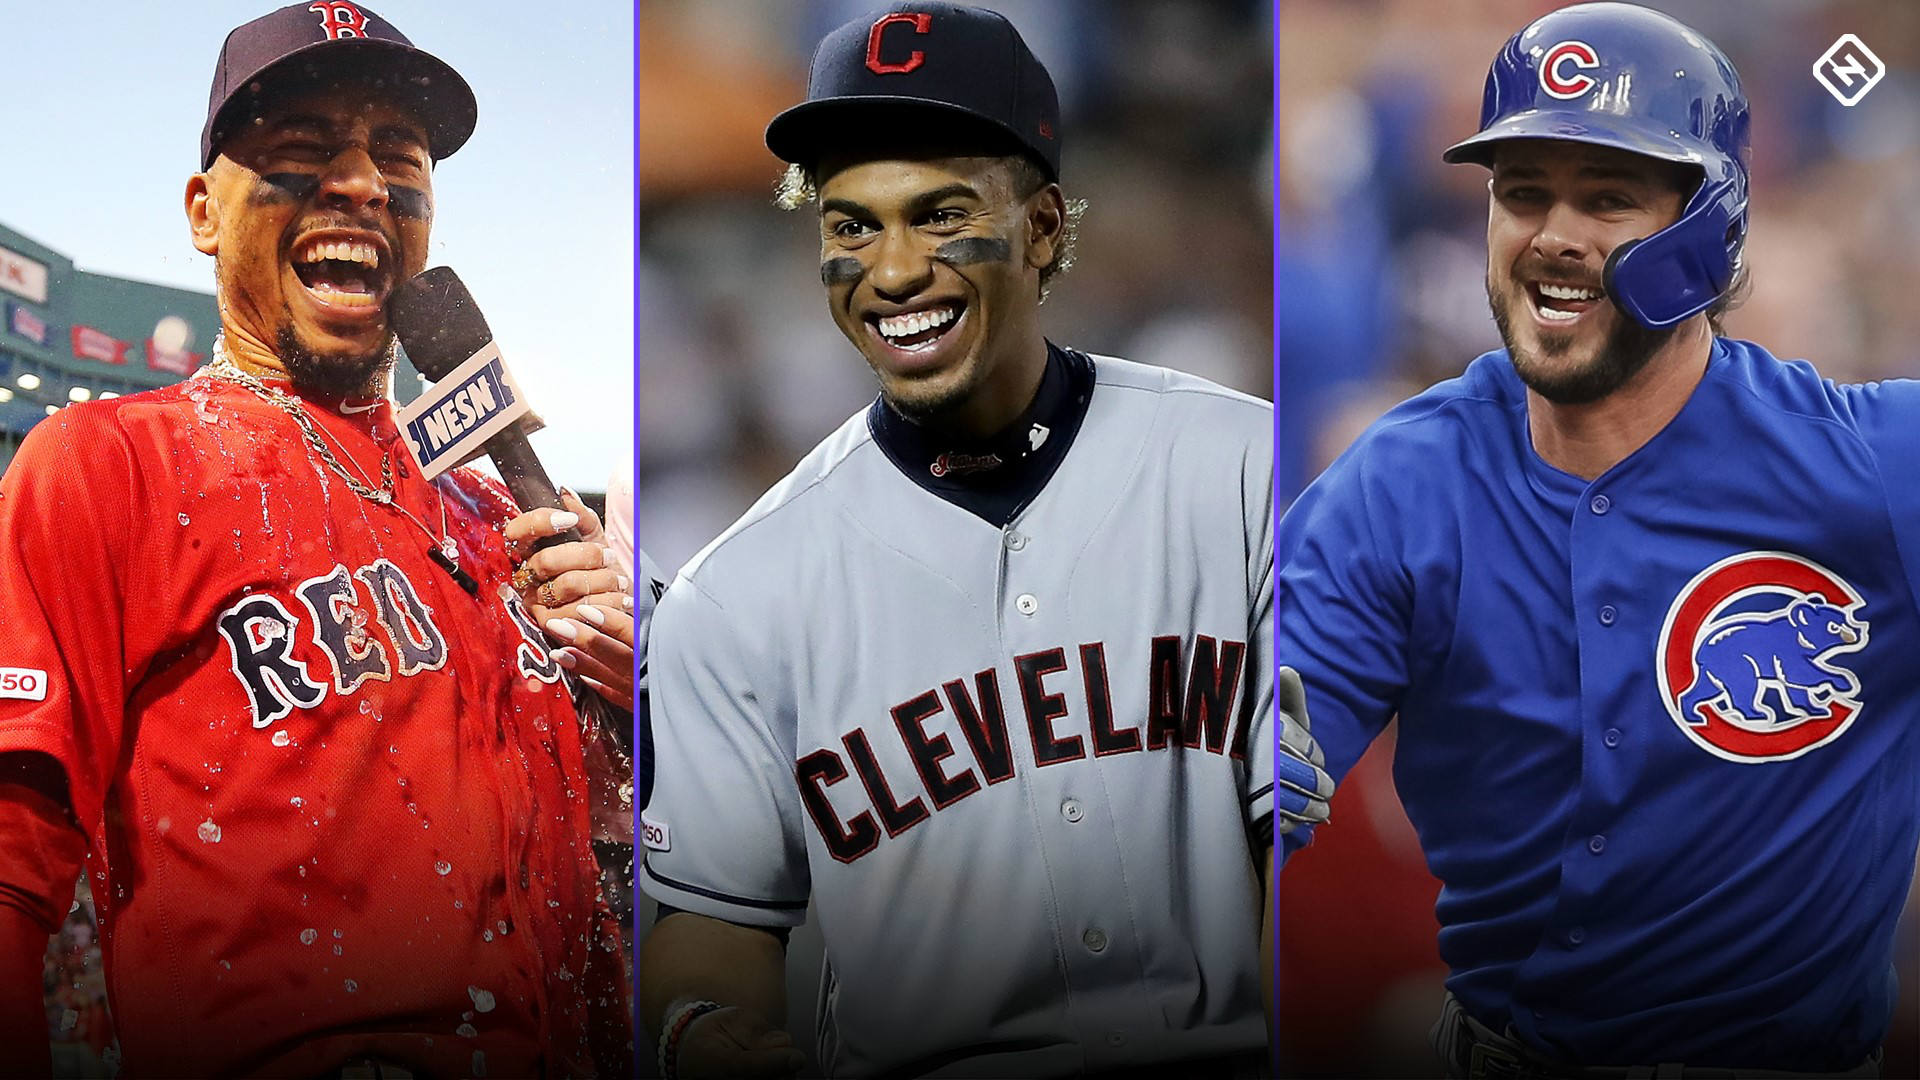 MLB trade rumors: Mookie Betts, Francisco Lindor or Kris Bryant could be moved, report says